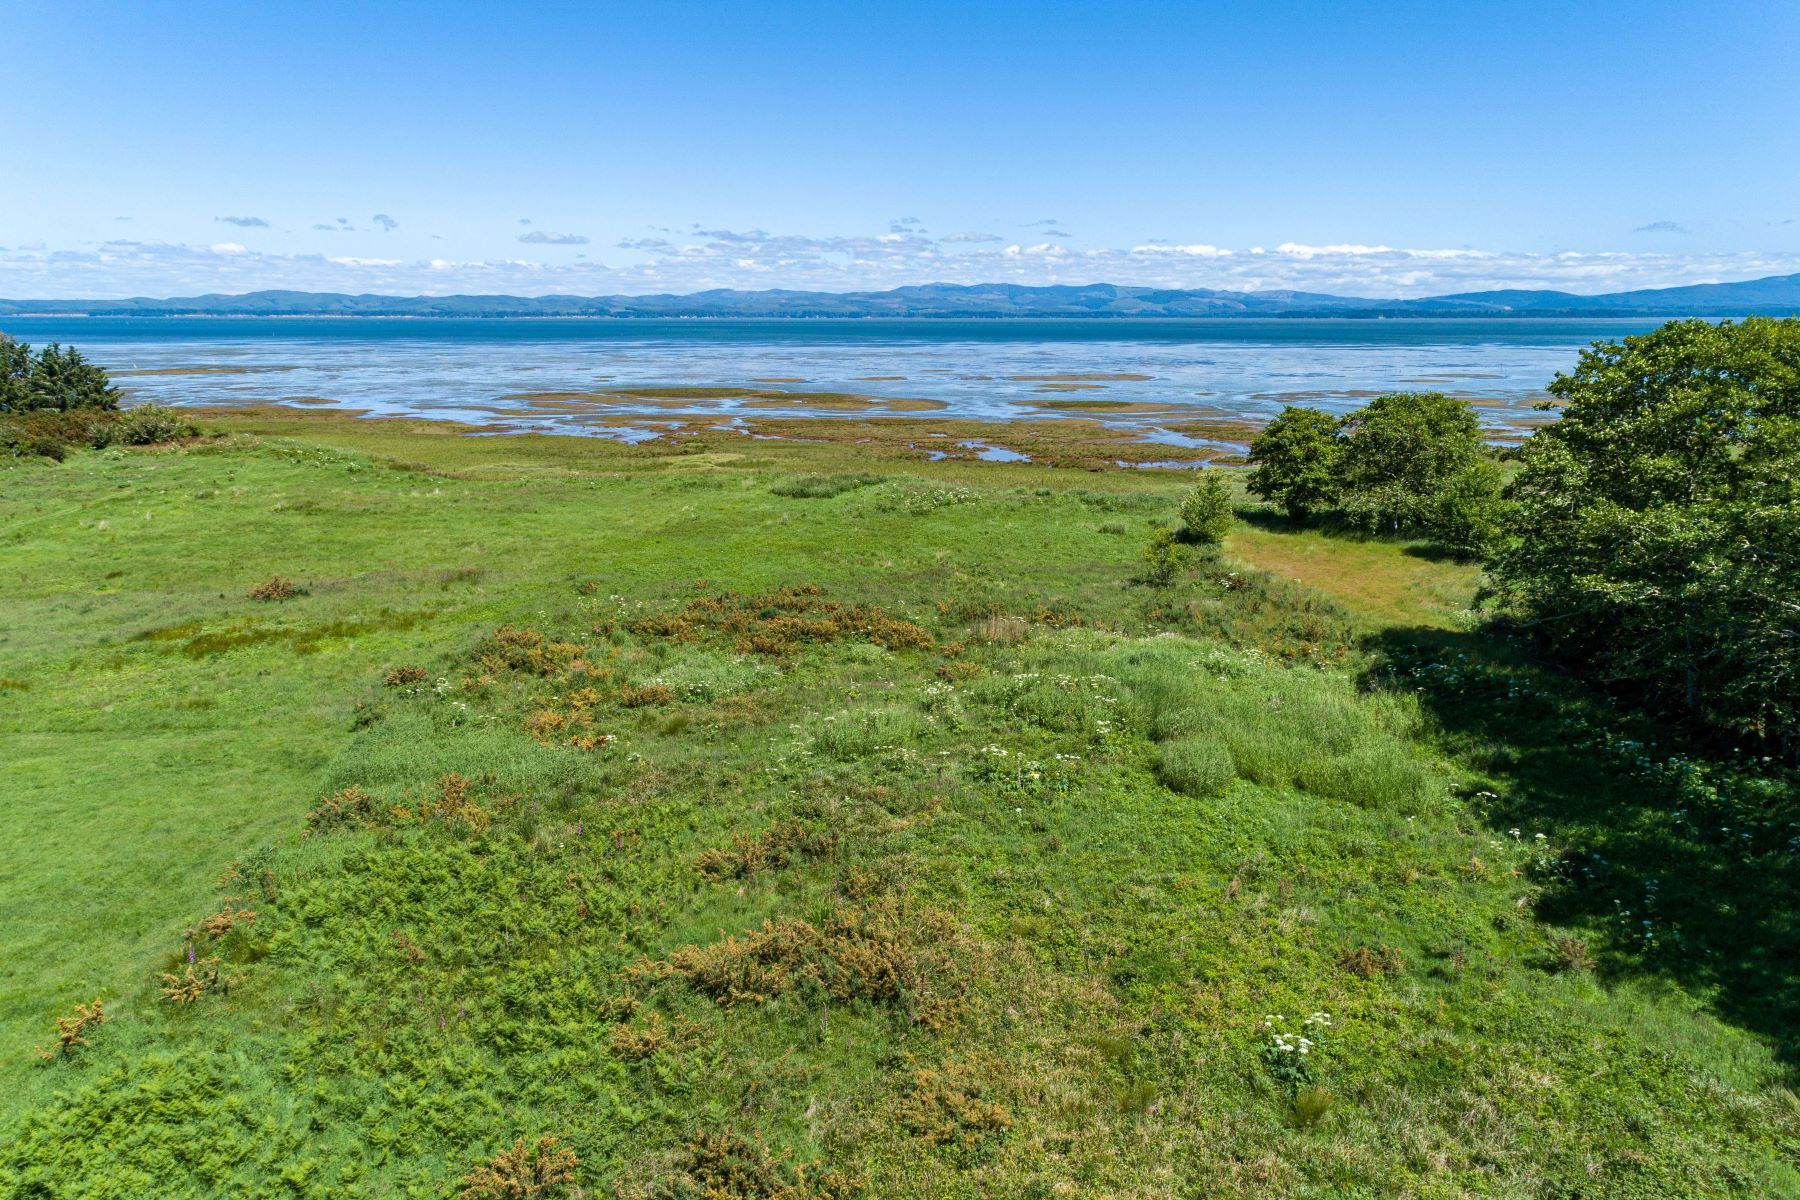 Land for Sale at 32640 Sandridge Rd, Oysterville, WA 98641 32610 Sandridge Rd Oysterville, Washington 98641 United States